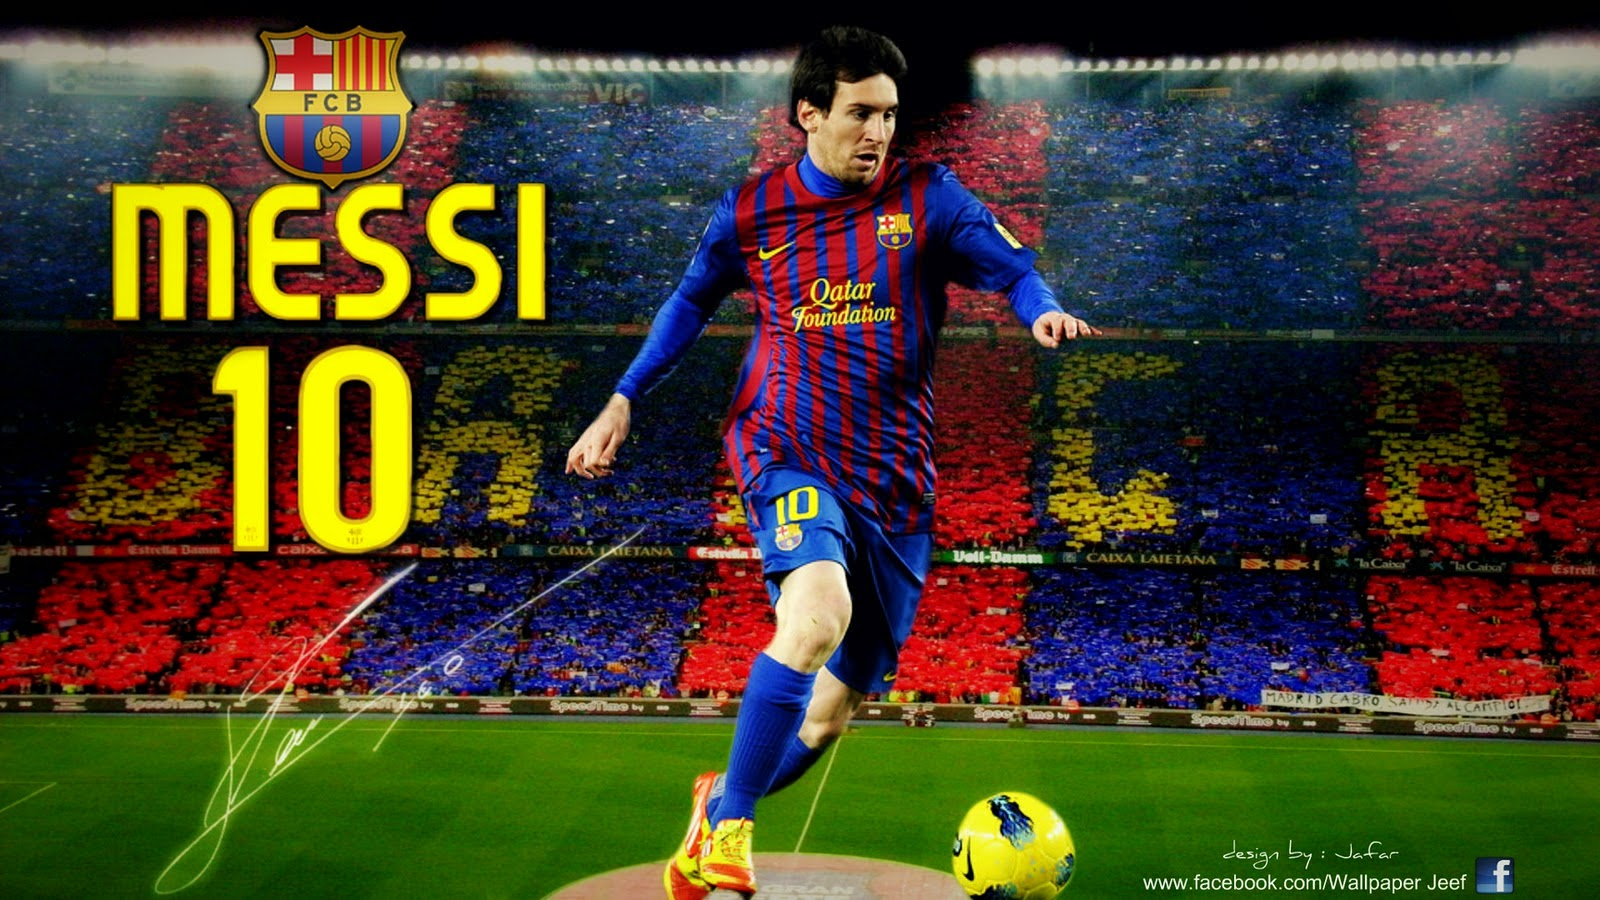 Lionel-Messi-Wallpaper-31